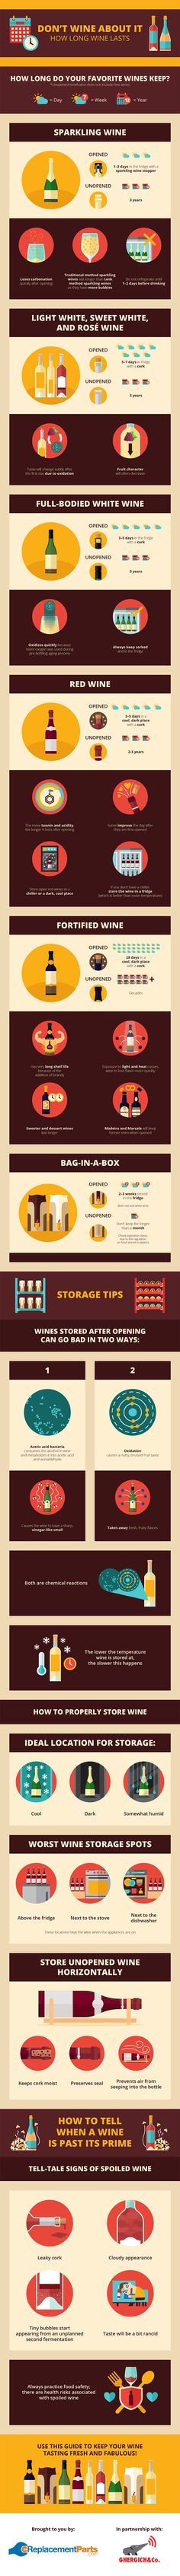 How long does wine last? This infographic has all the details on how long wine lasts unopened and once it's been opened.